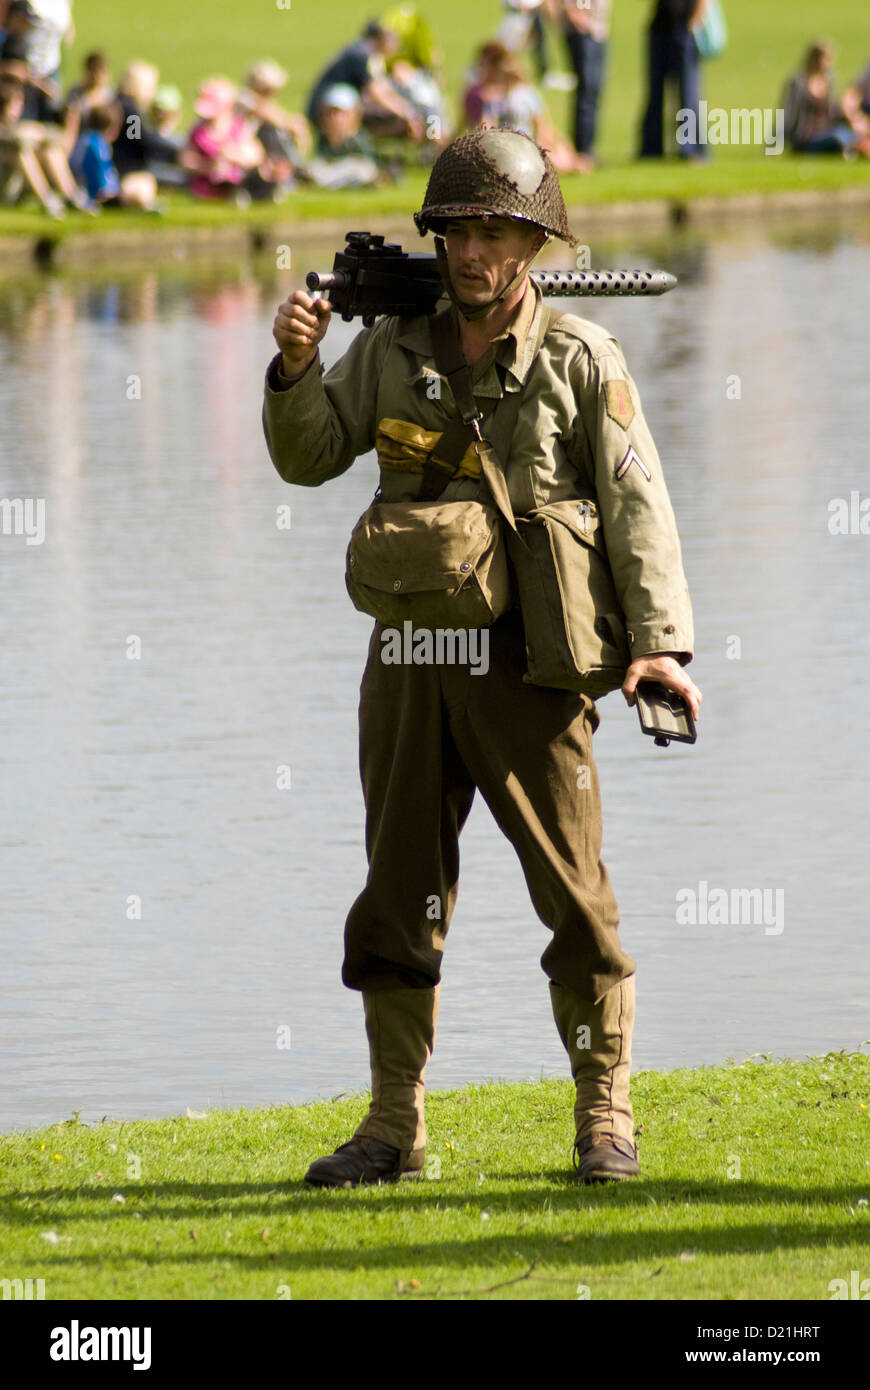 A WW2 American soldier in a modern day reenactment. - Stock Image